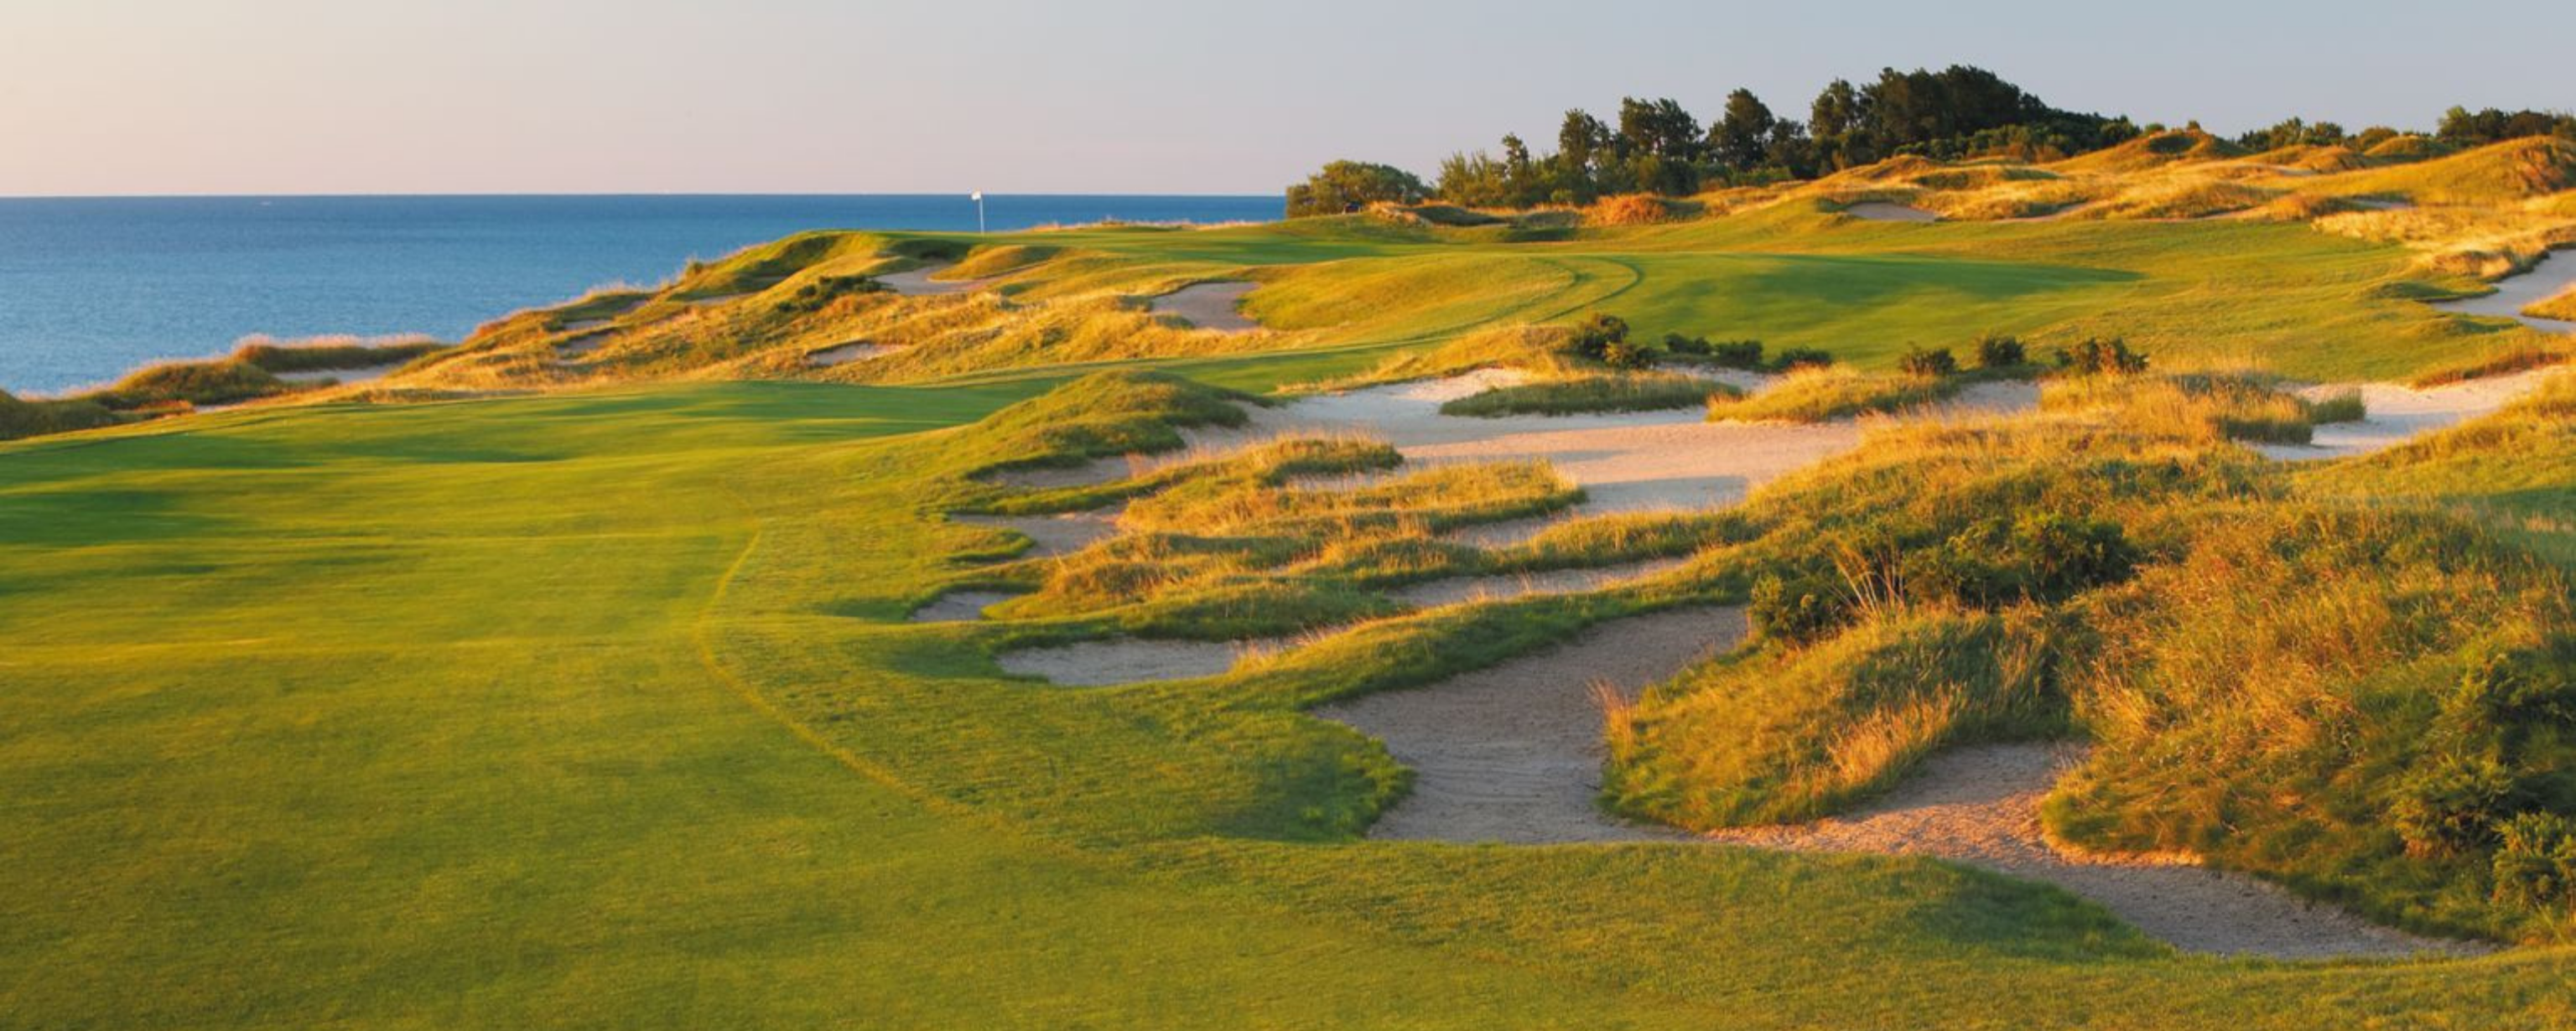 2021 nextgengolf city tour whistling straits